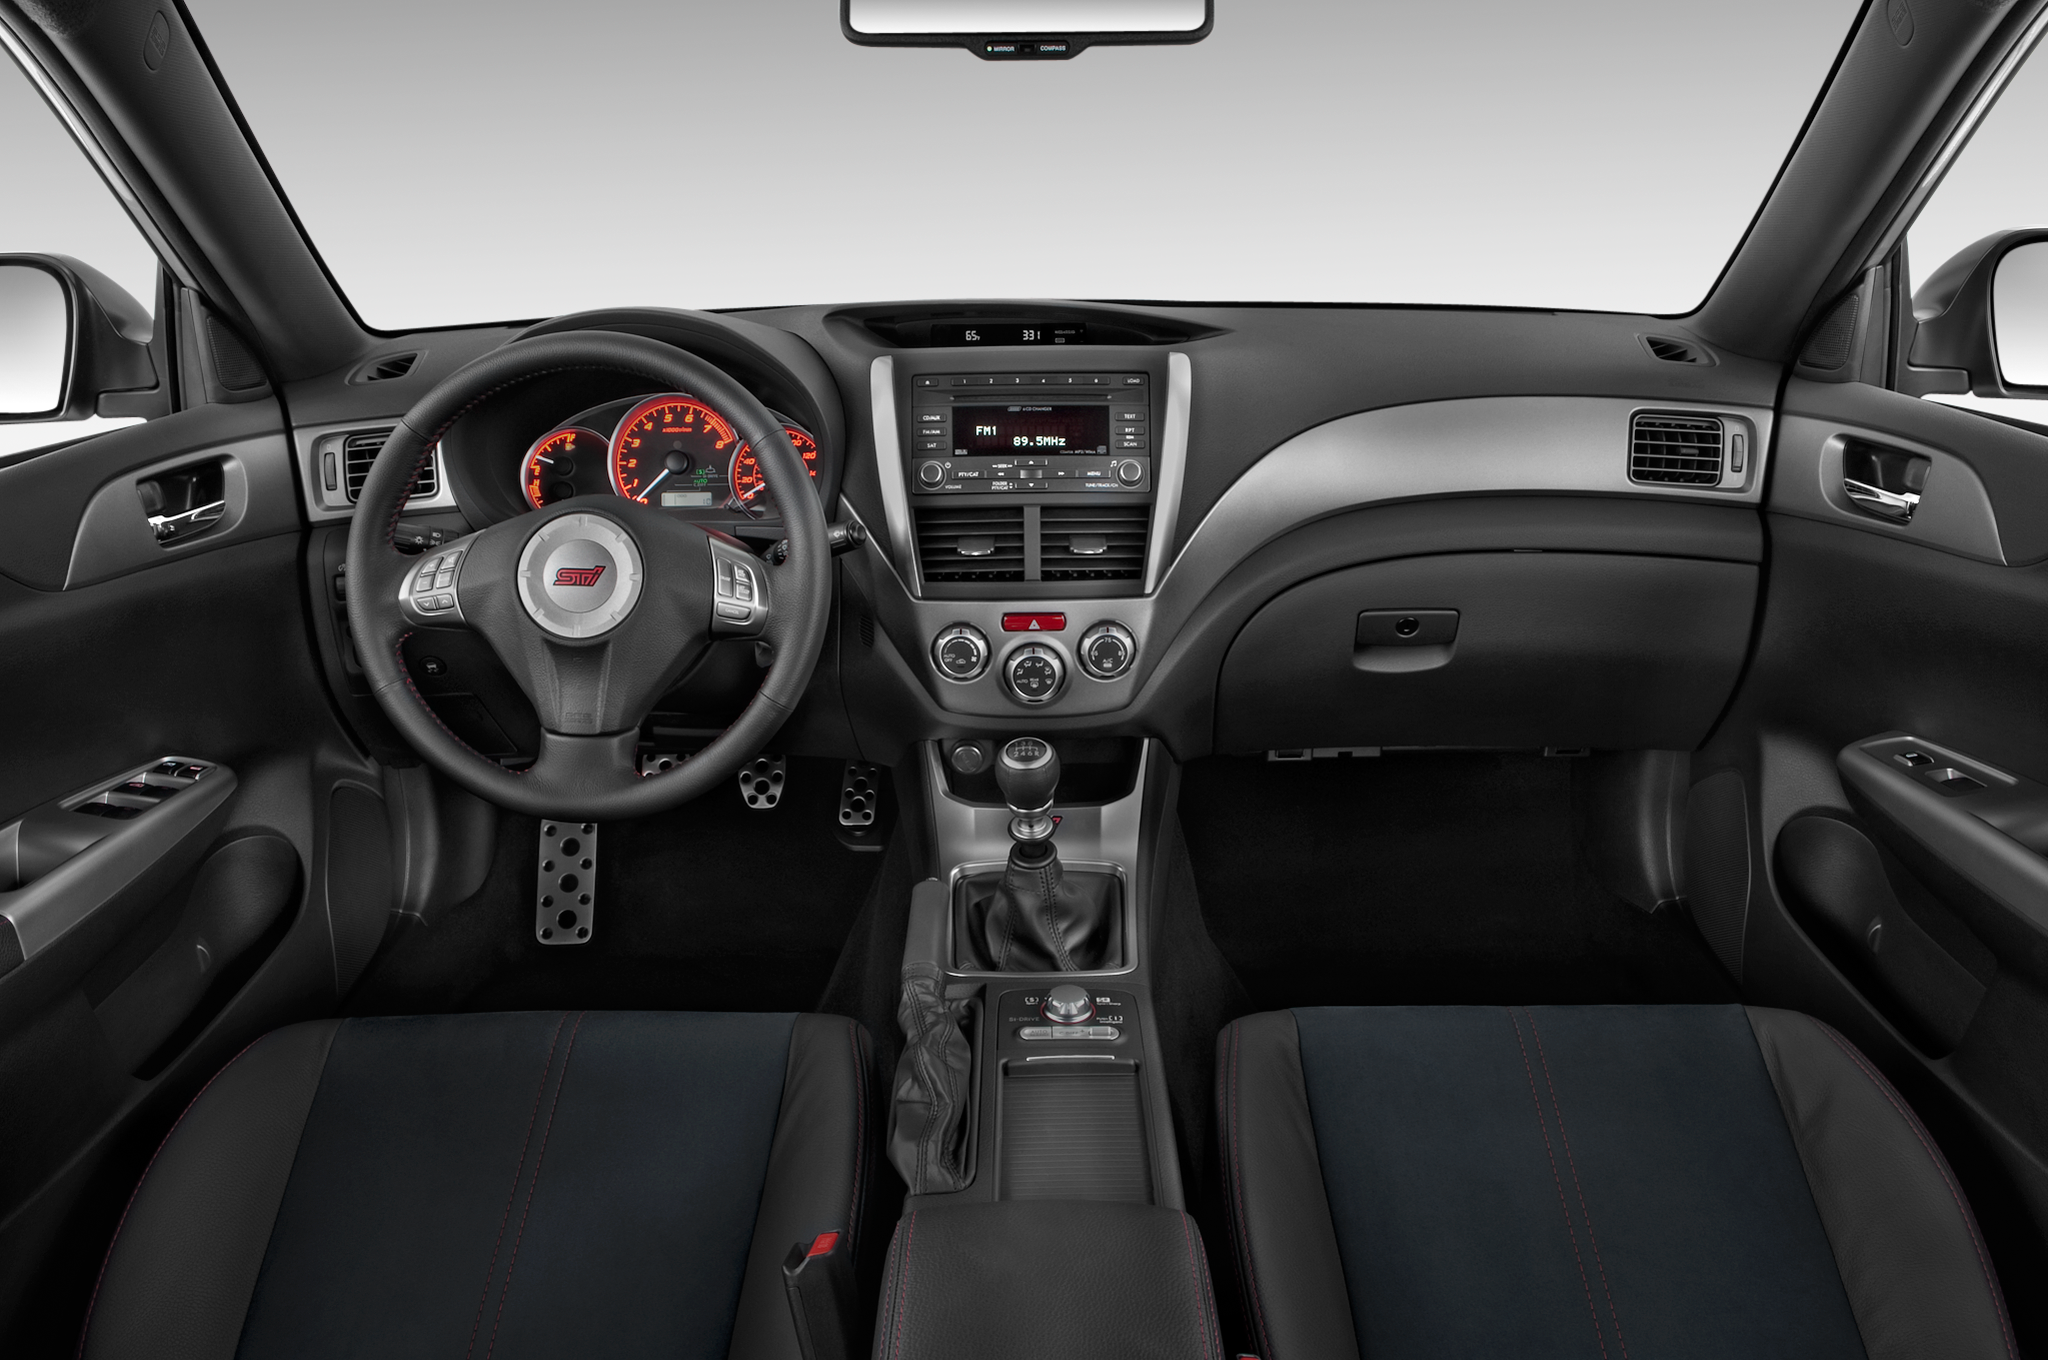 2010 subaru impreza wrx sti special edition 2009 la auto. Black Bedroom Furniture Sets. Home Design Ideas